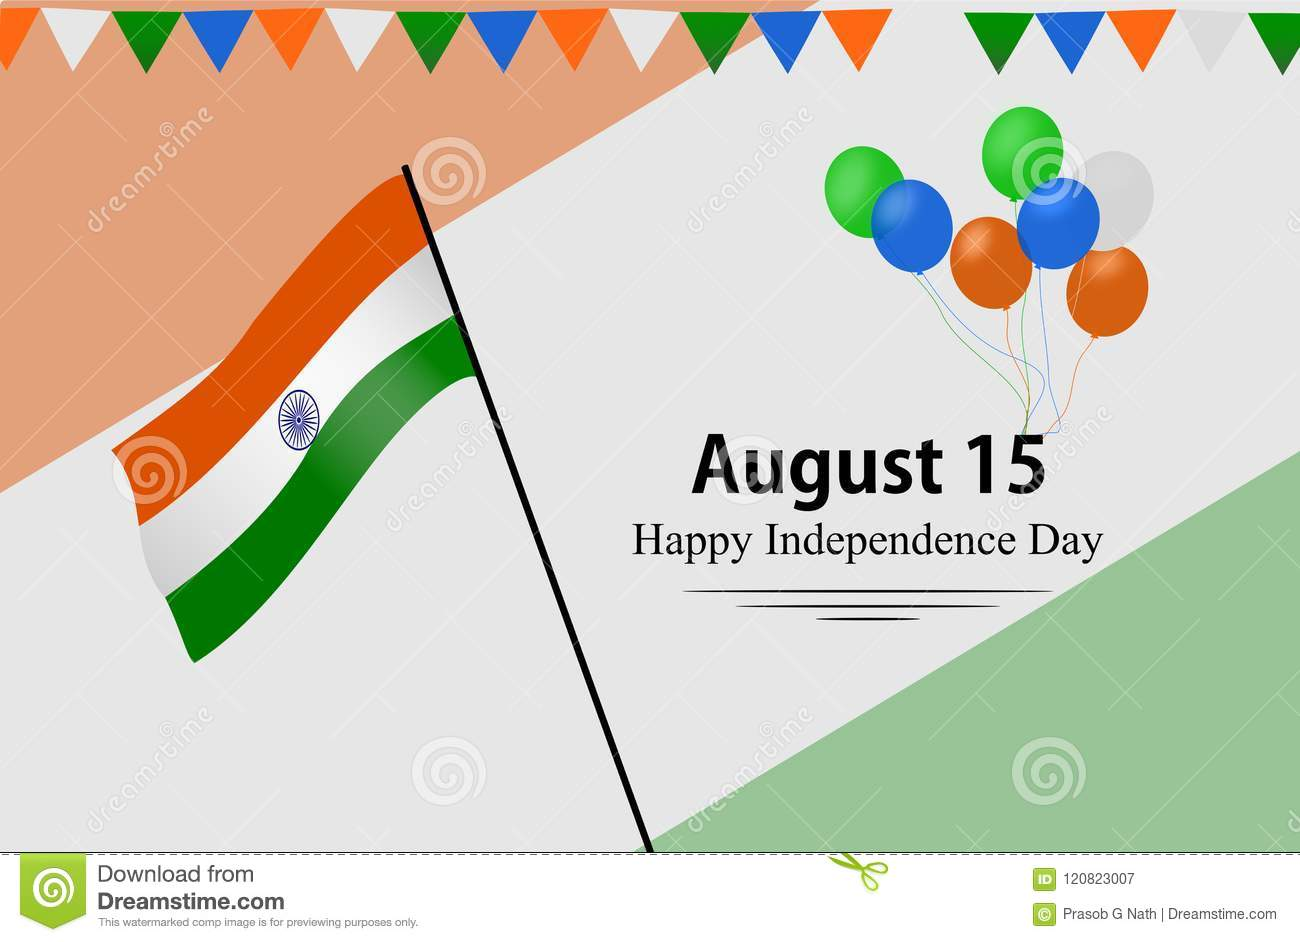 Happy Independence Day India Stock Vector - Illustration of